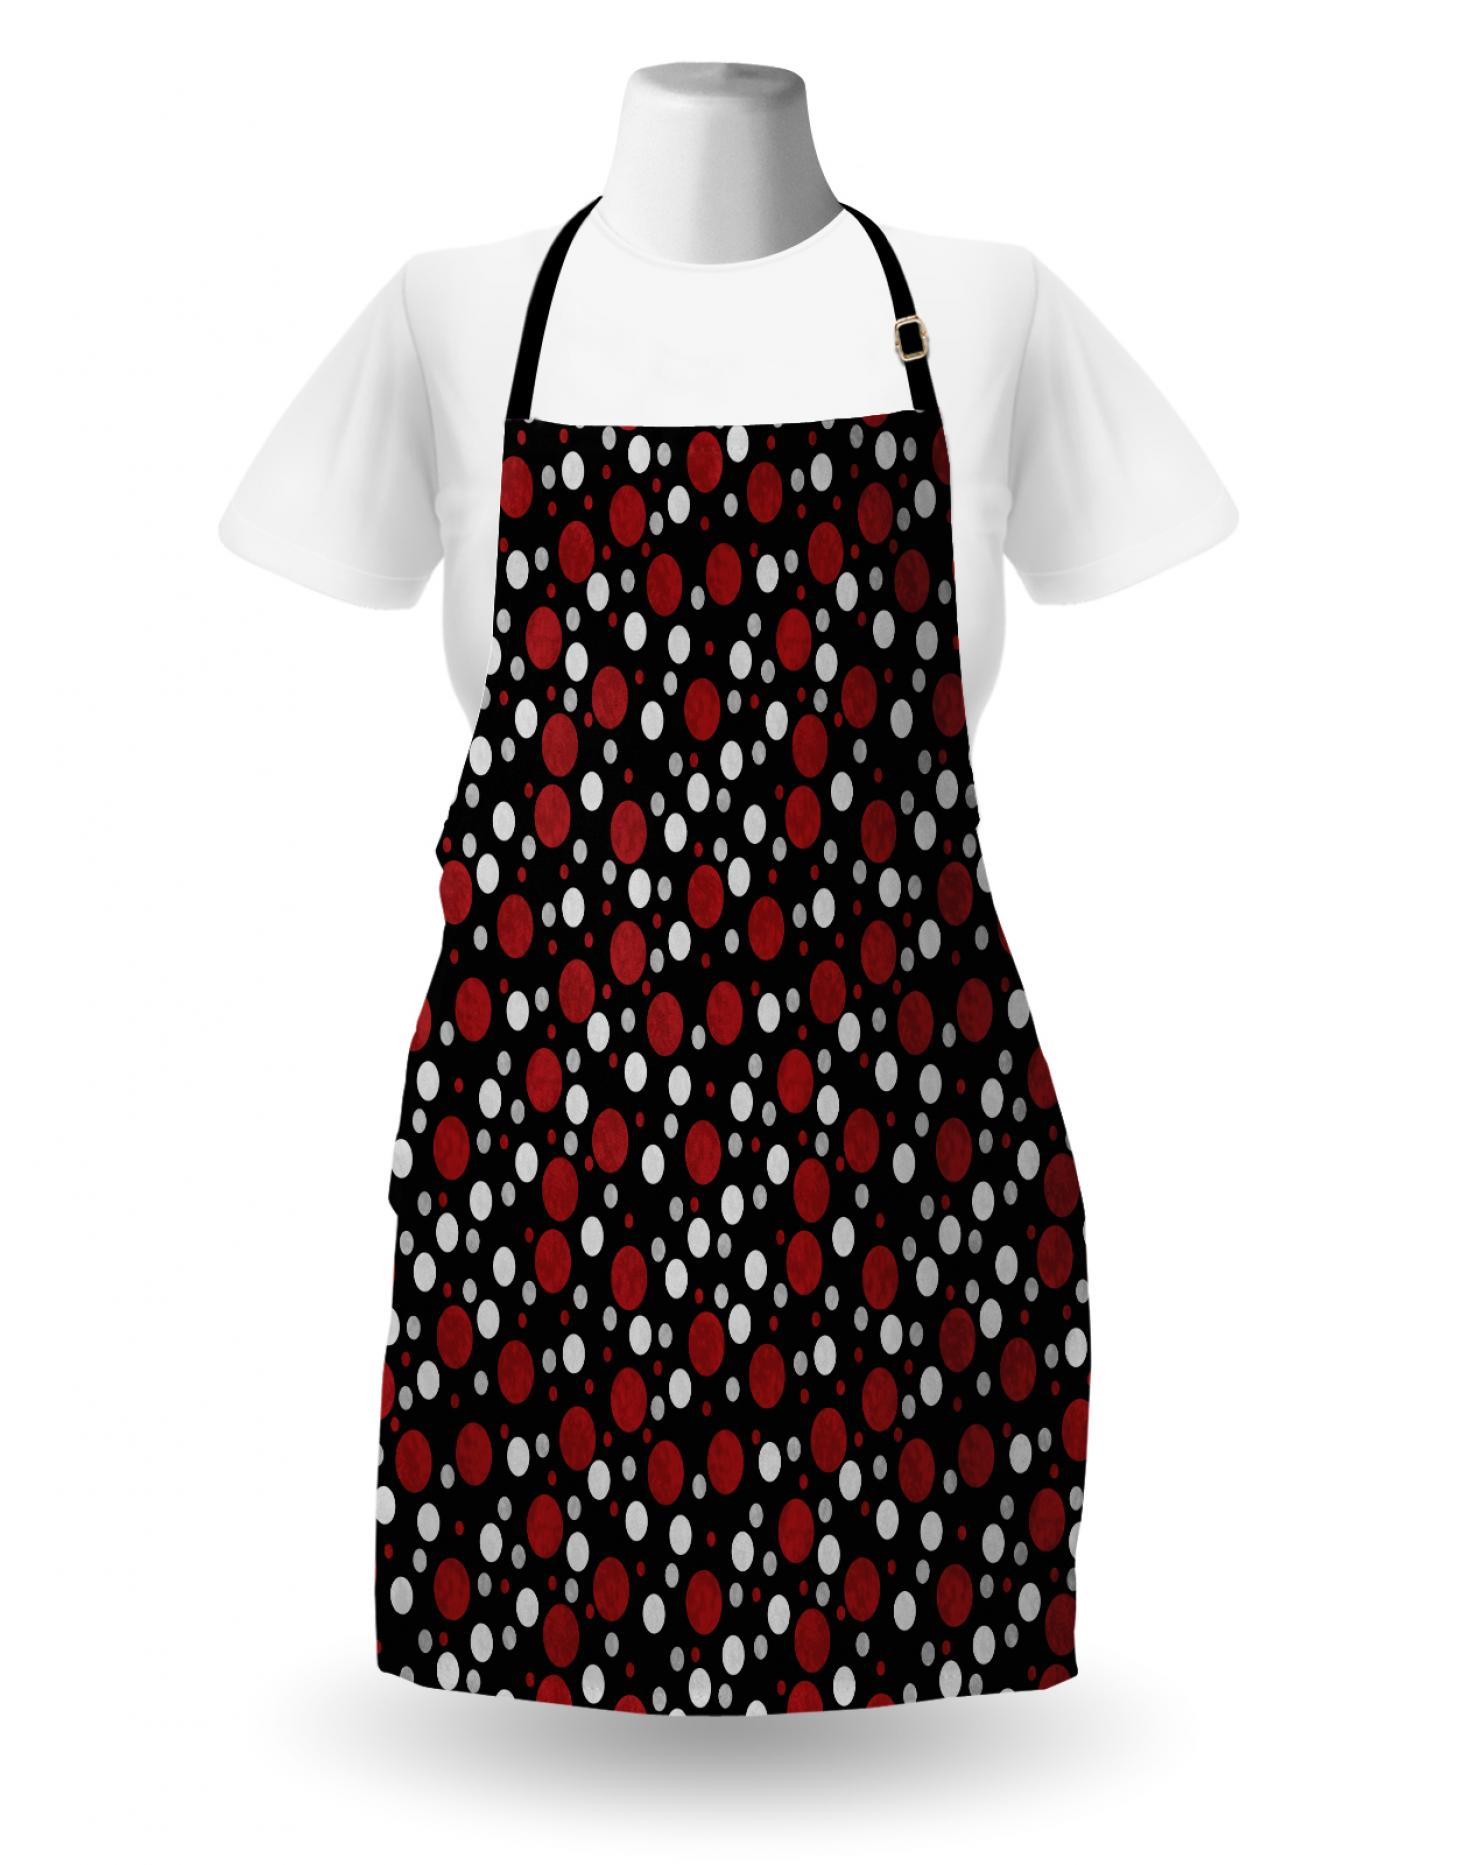 60s70s Red and White Polka Dot Bow Print Full Open Back Apron SmallMed 1960s 1970s Handmade Apron Cute Apron with Bows and Polka Dot